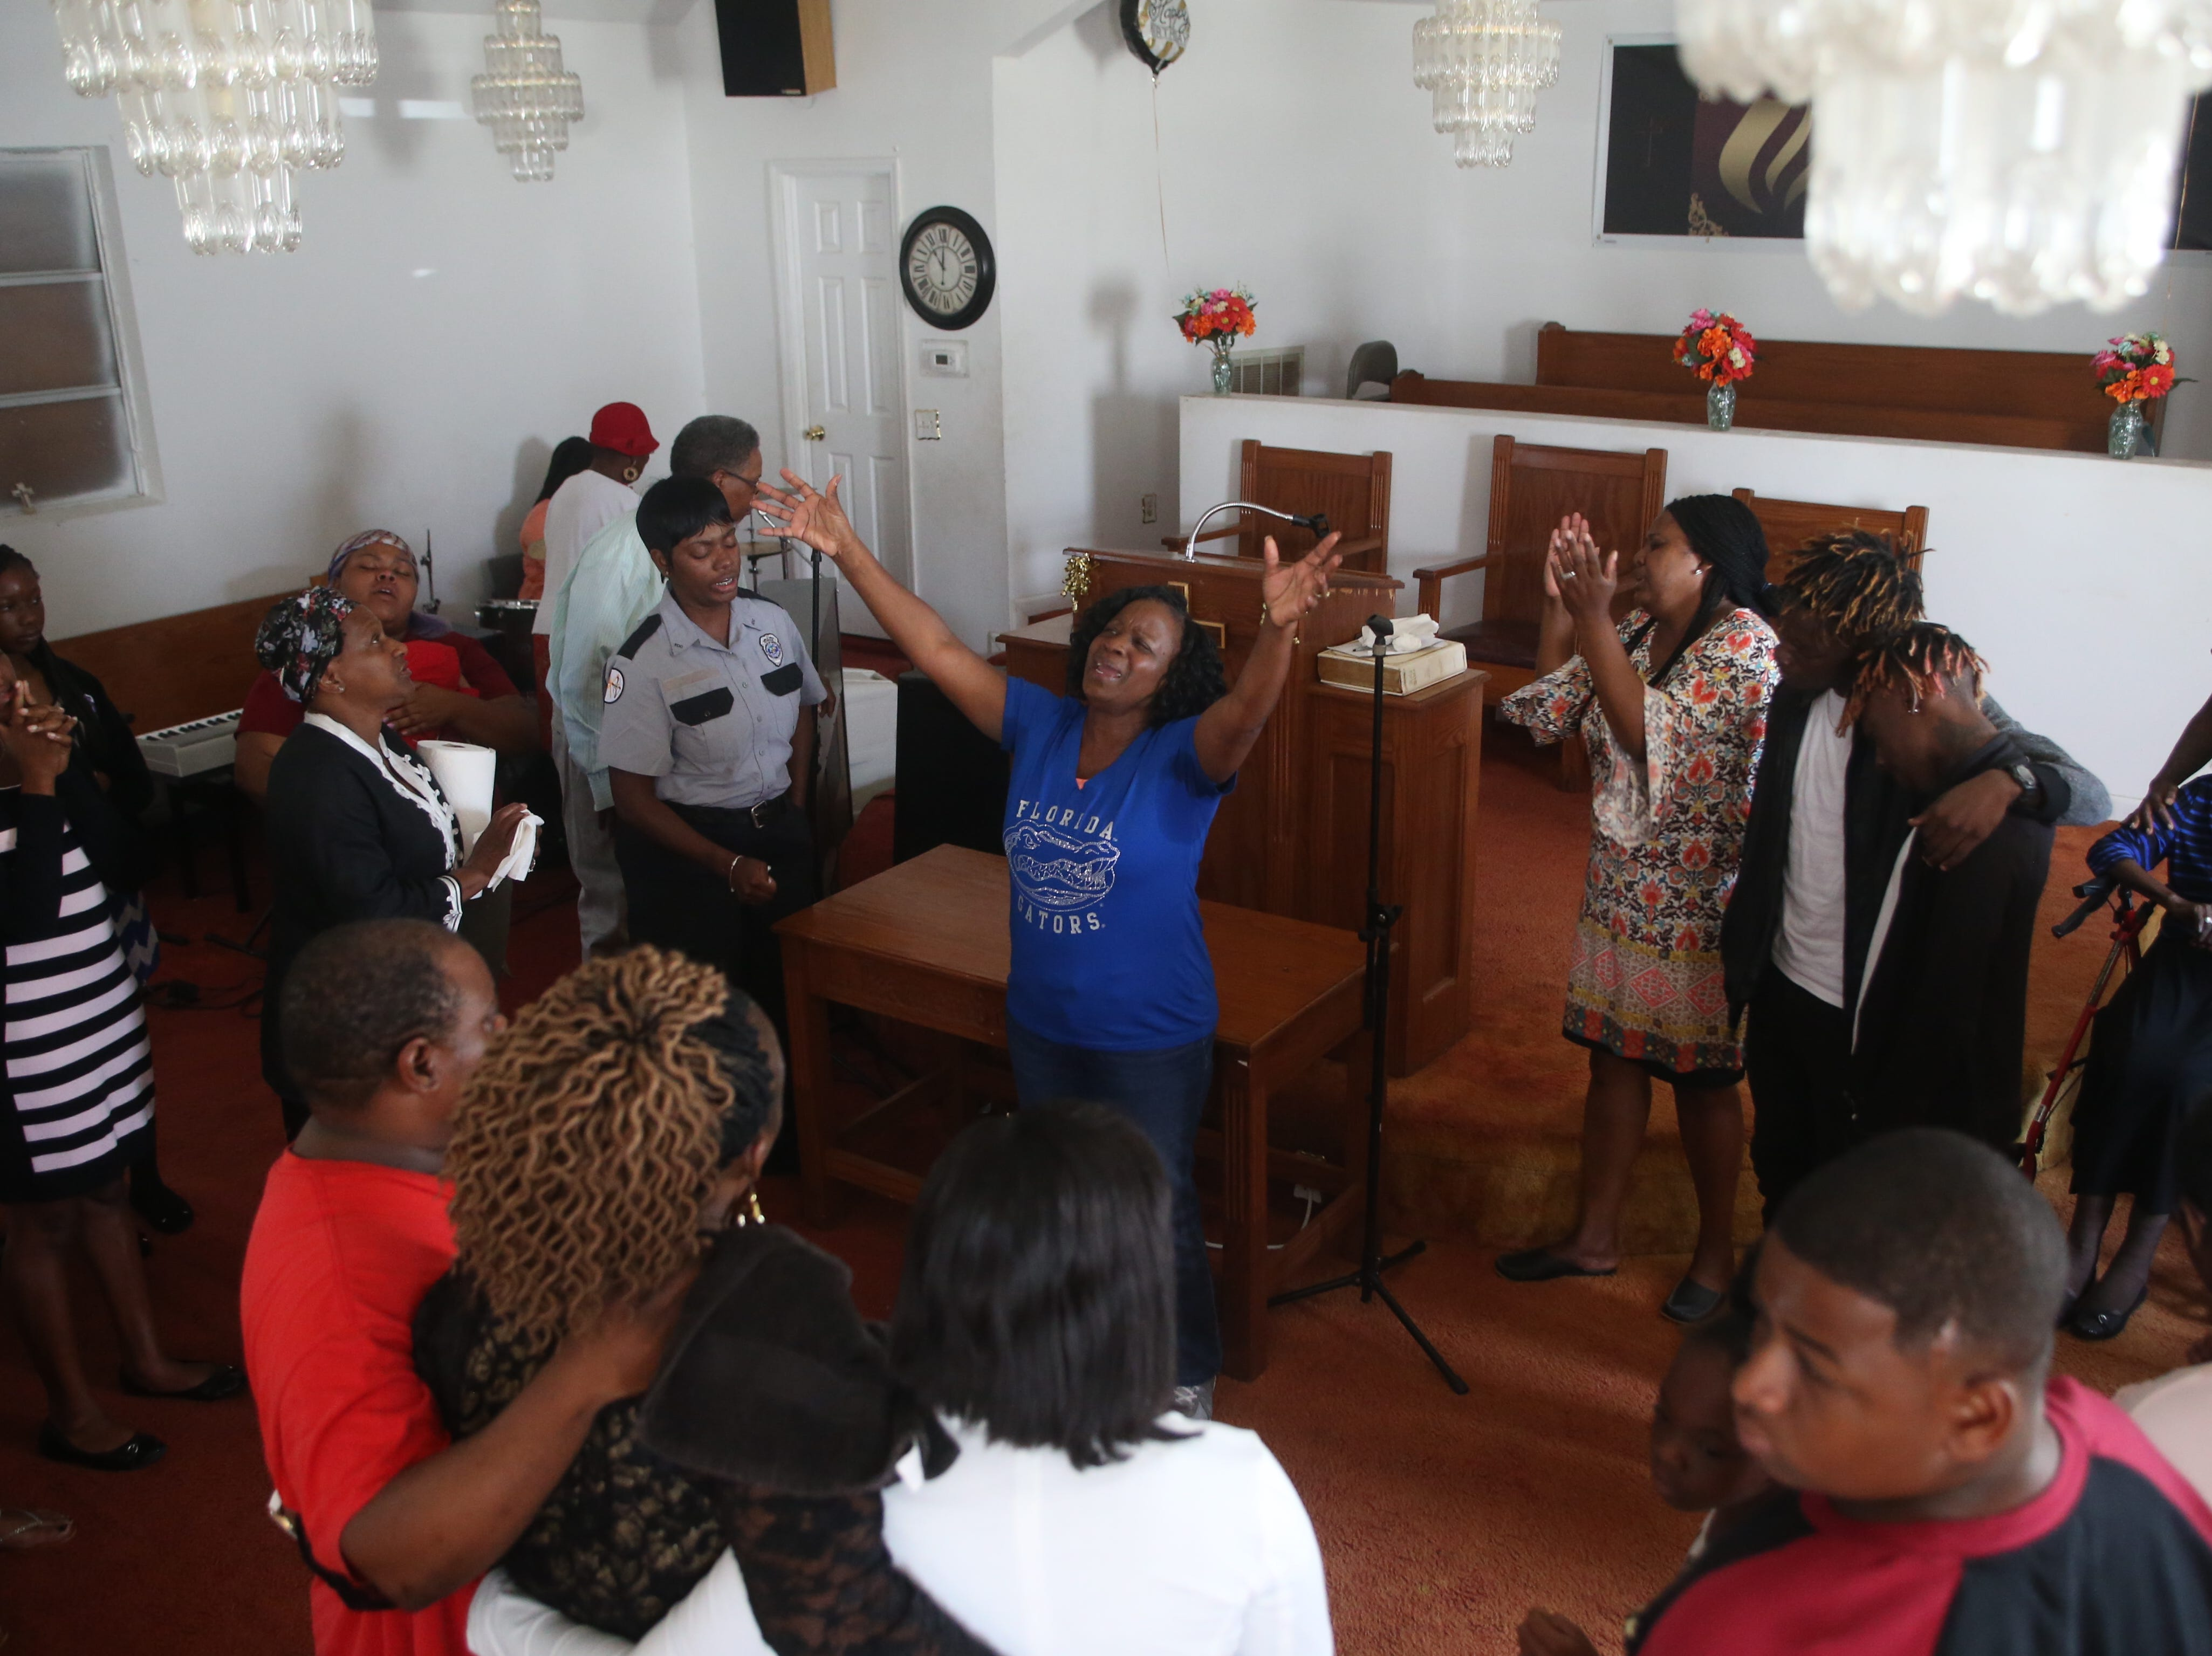 Church members surround Tyrone Grant and Tyran Grant sons of Demashell Bass, a woman who could not receive medical attention and died during the hurricane as they sing songs of worship at the Dream, Vision, and Destiny (DVD) Ministry in Gretna, Fla., on Sunday Oct. 14, 2018, after Hurricane Michael hits the Florida panhandle.